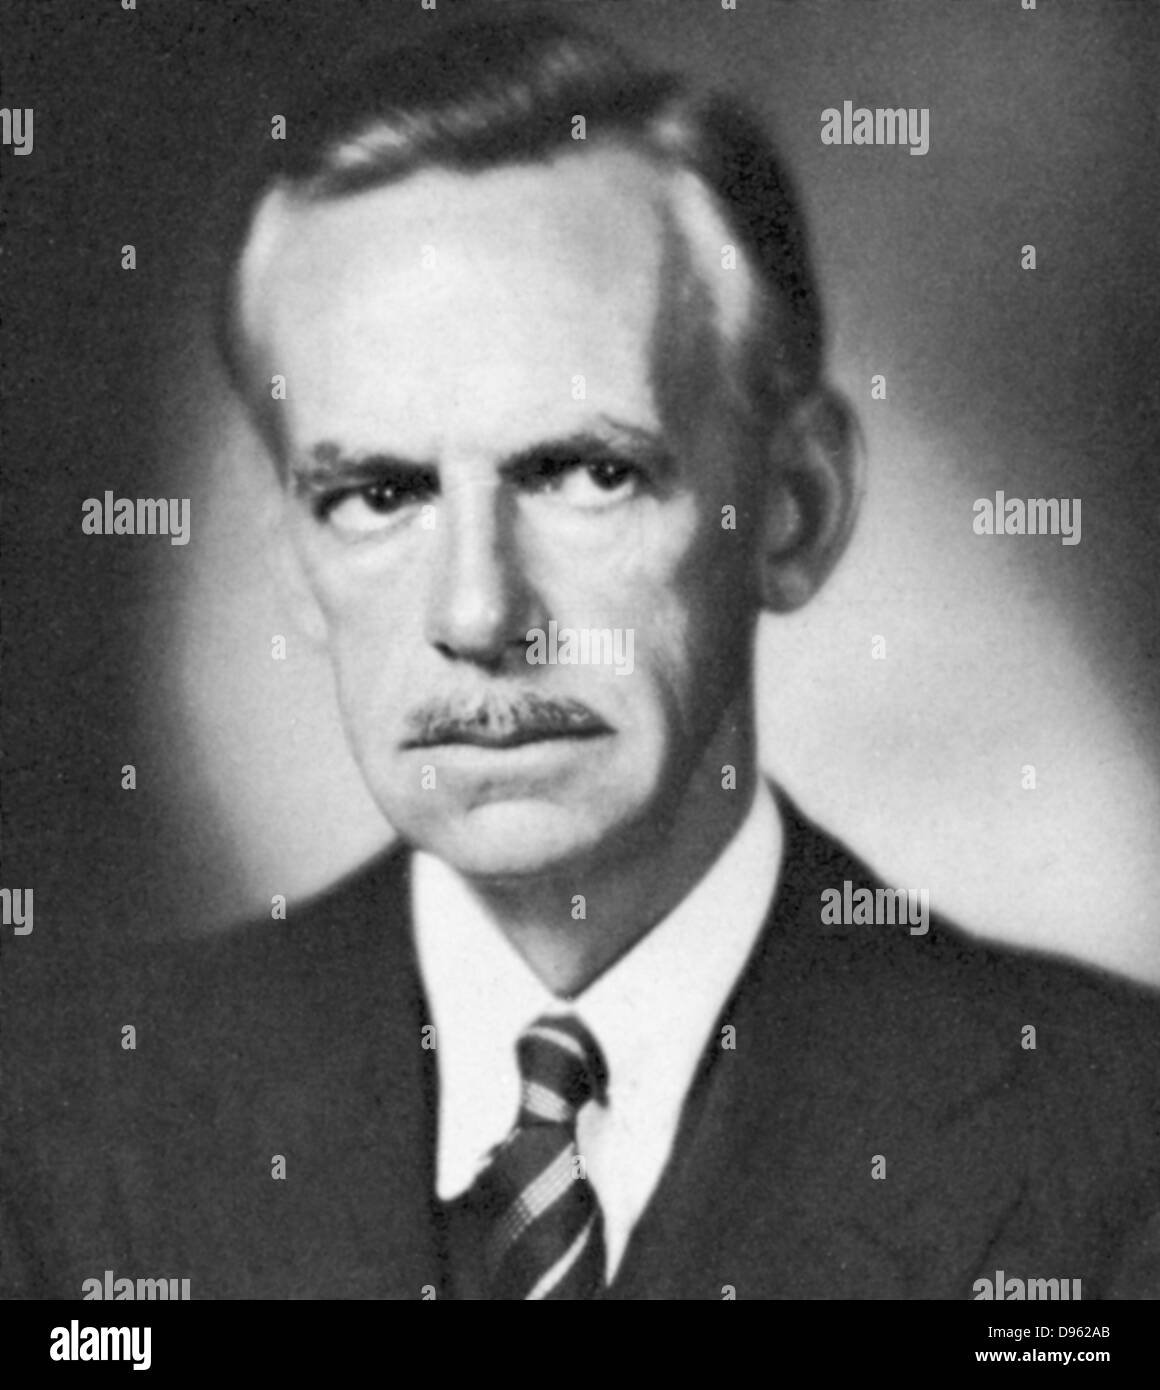 Eugene Gladstone O'Neil (1888-1953) American playwright. - Stock Image